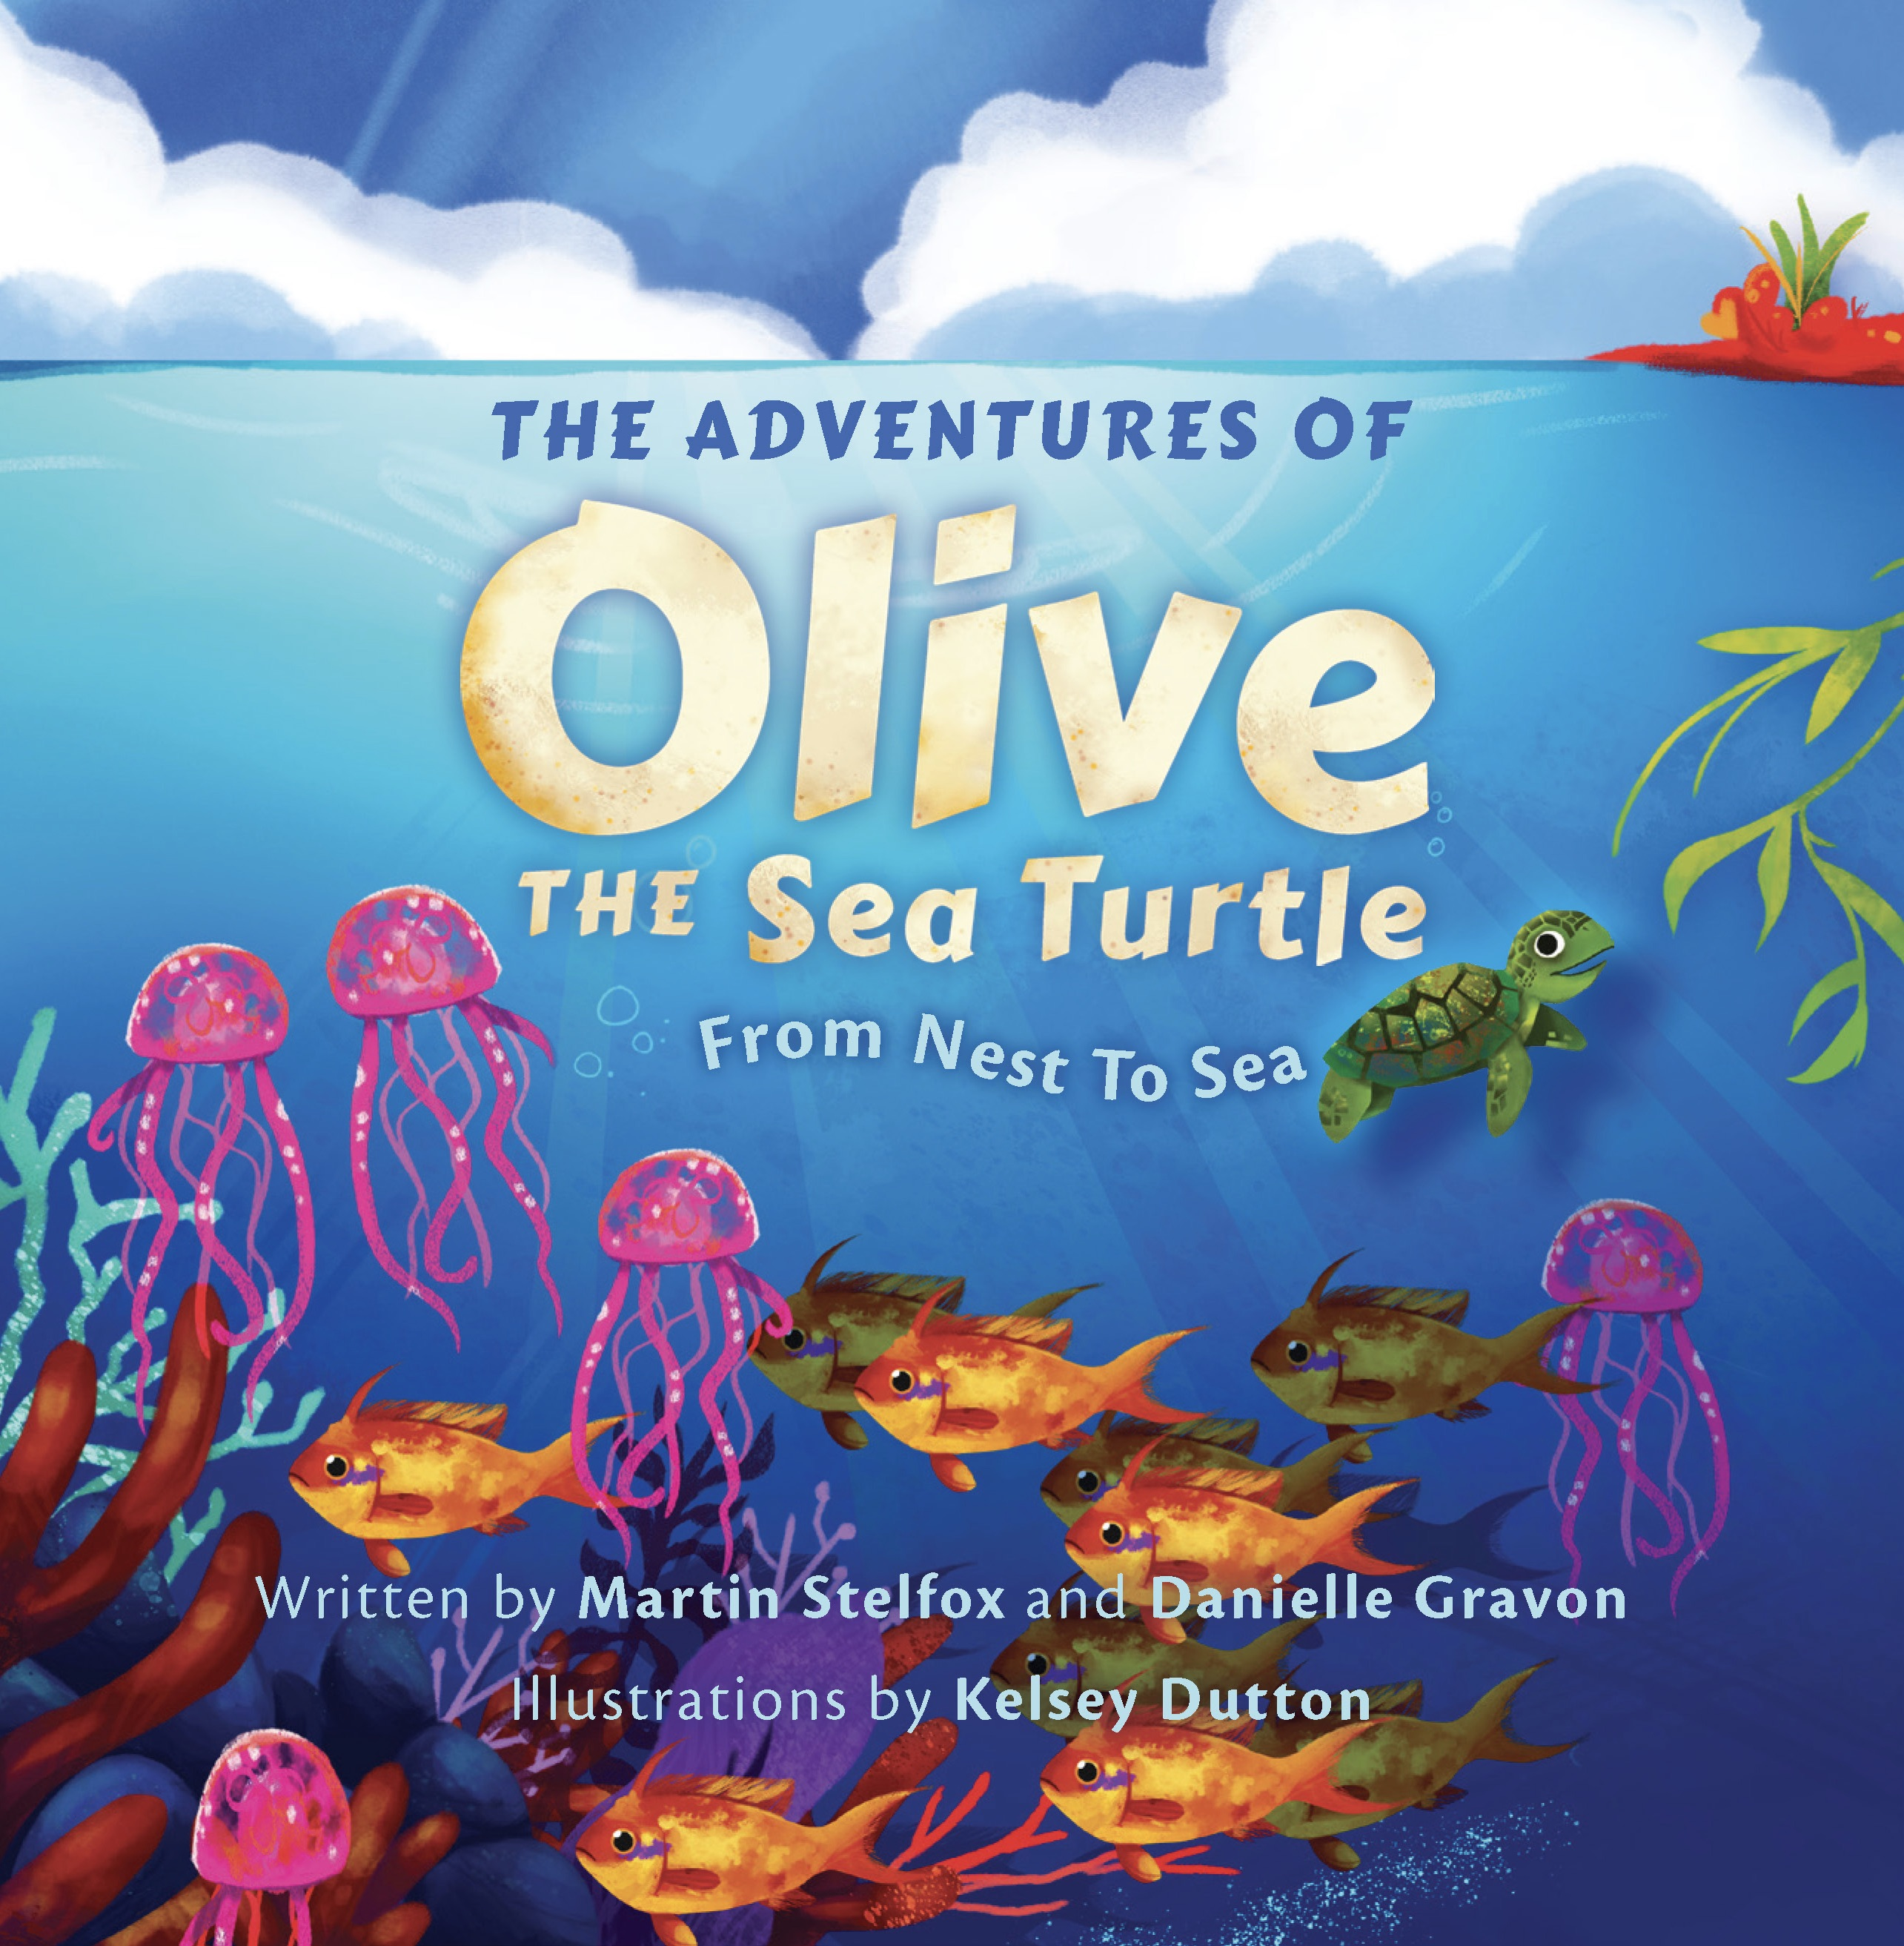 The Adventures of Olive the Sea Turtle